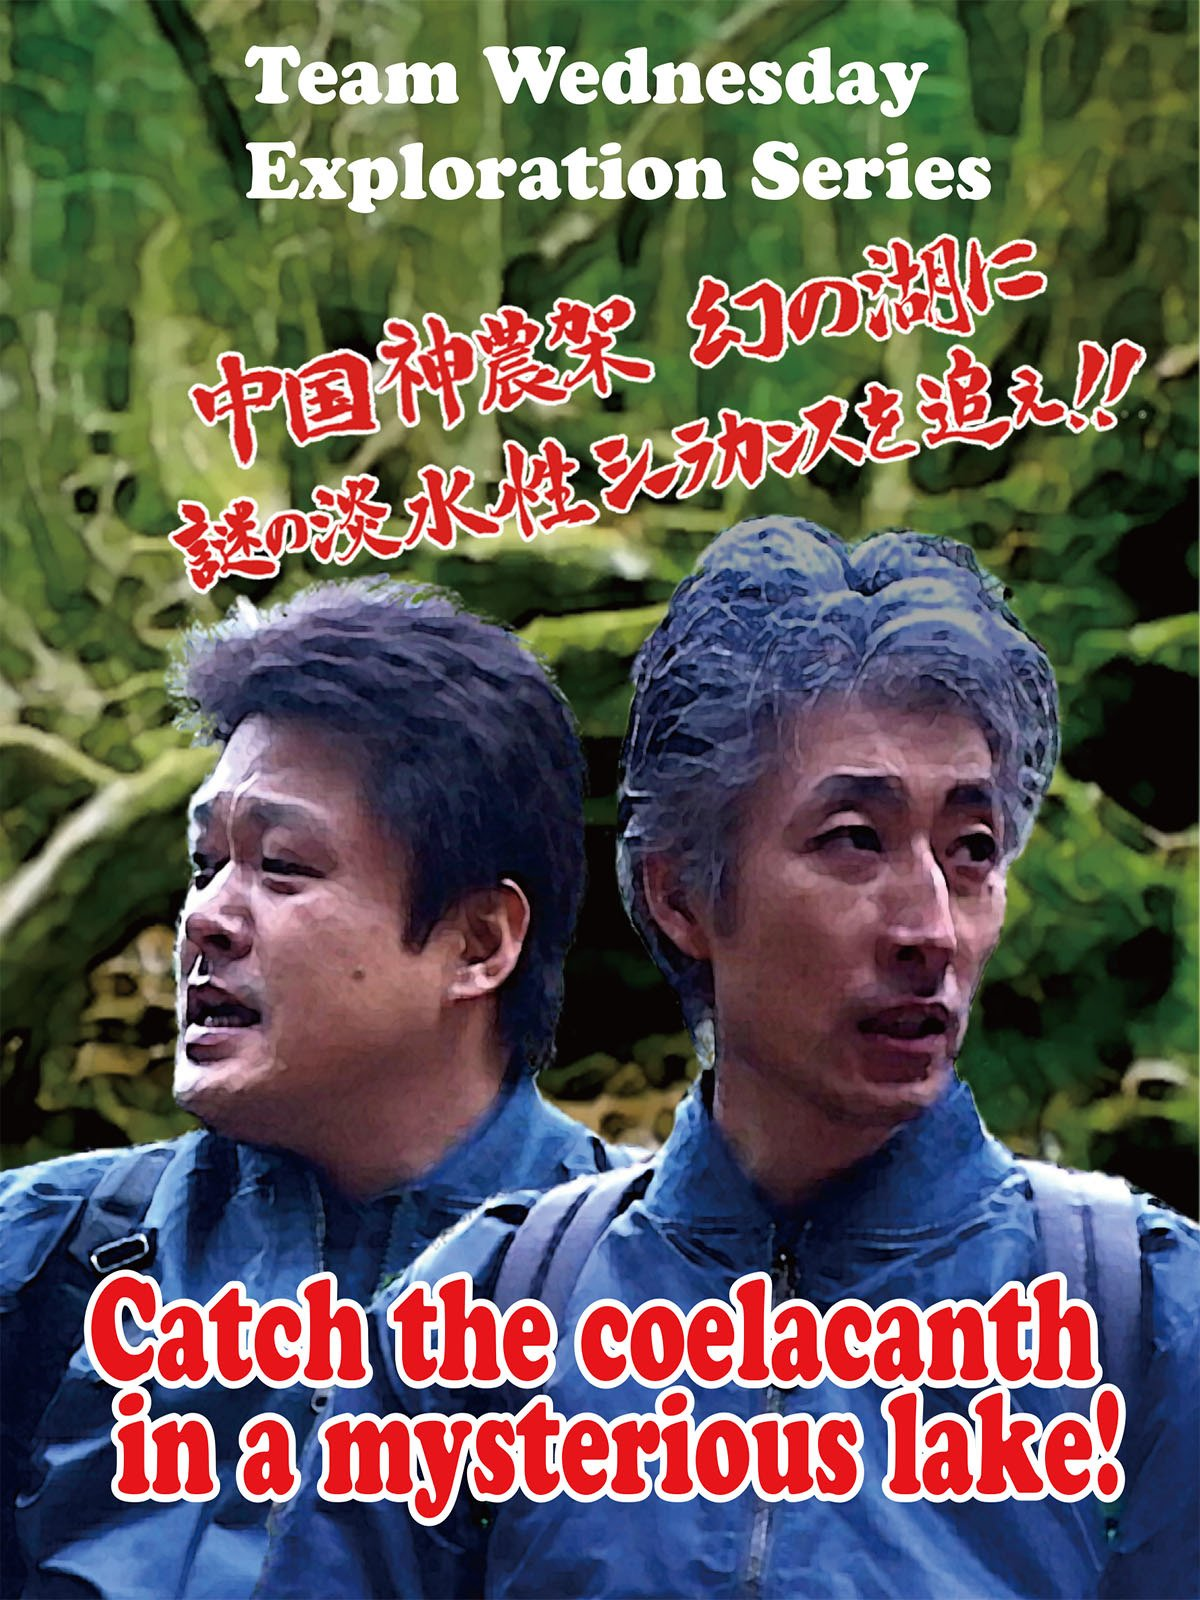 Catch the coelacanth in a mysterious lake!